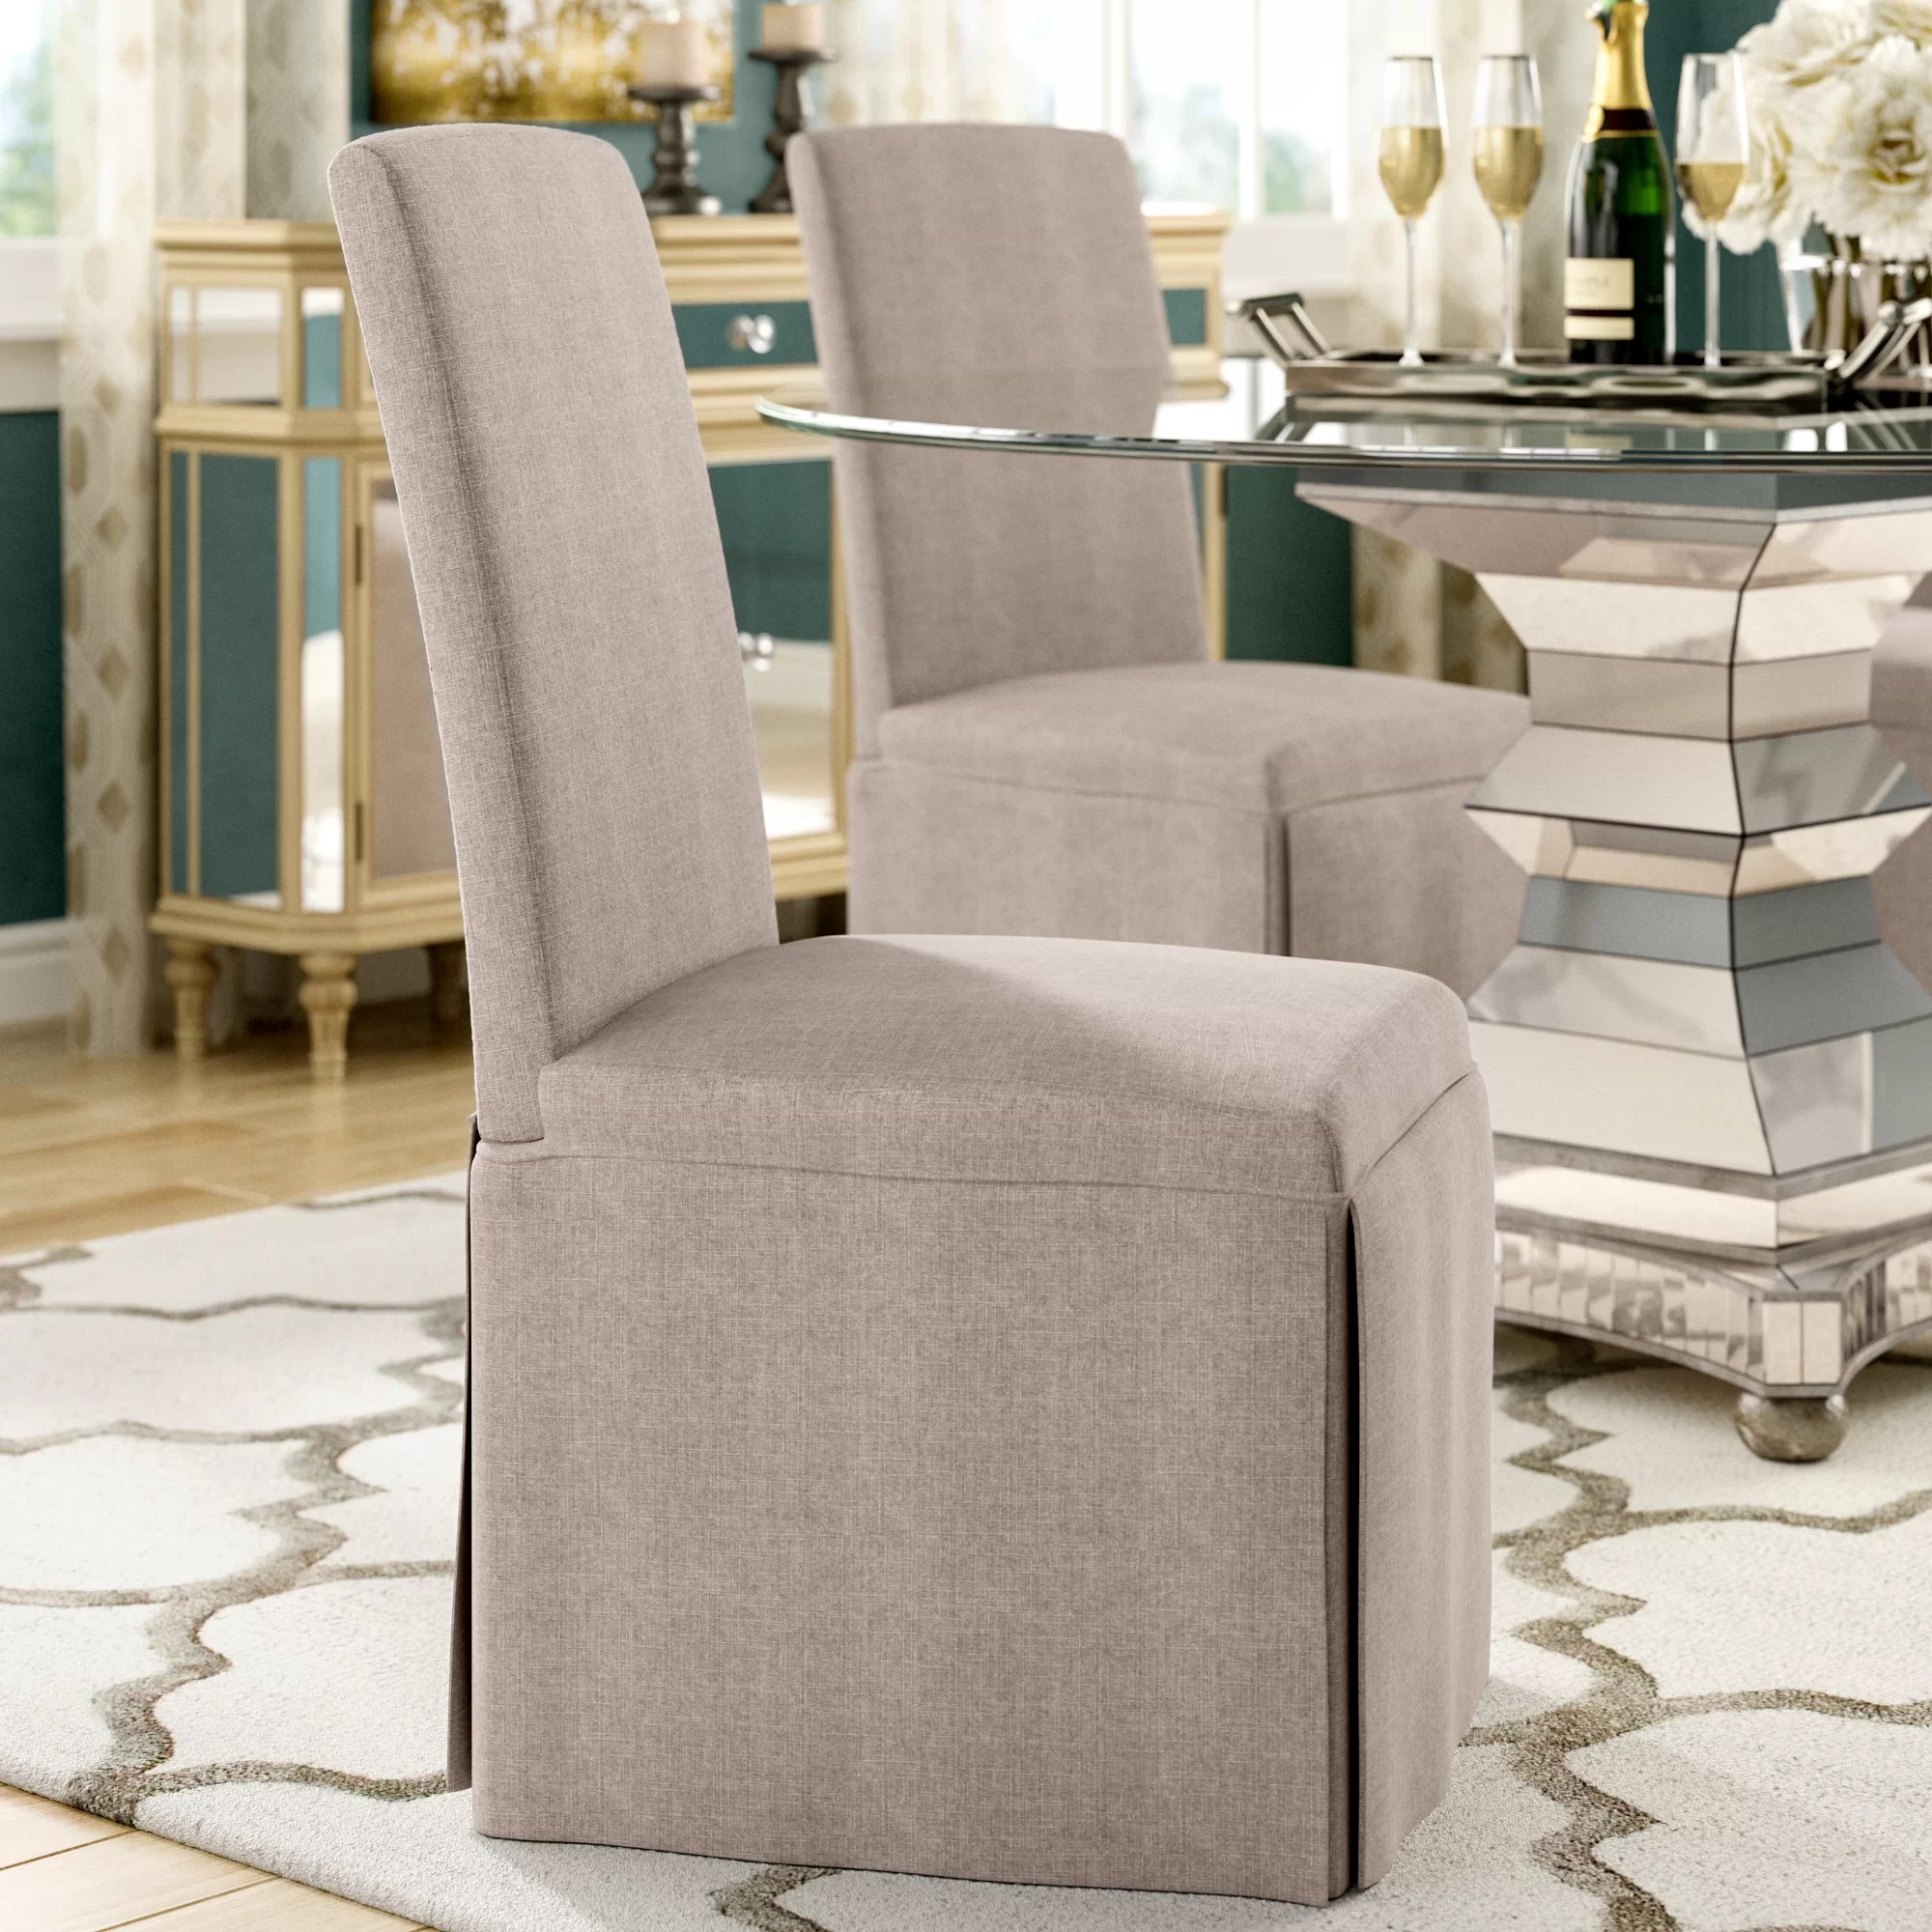 Dining Room Upholstered Chairs Lamb Upholstered Dining Chair